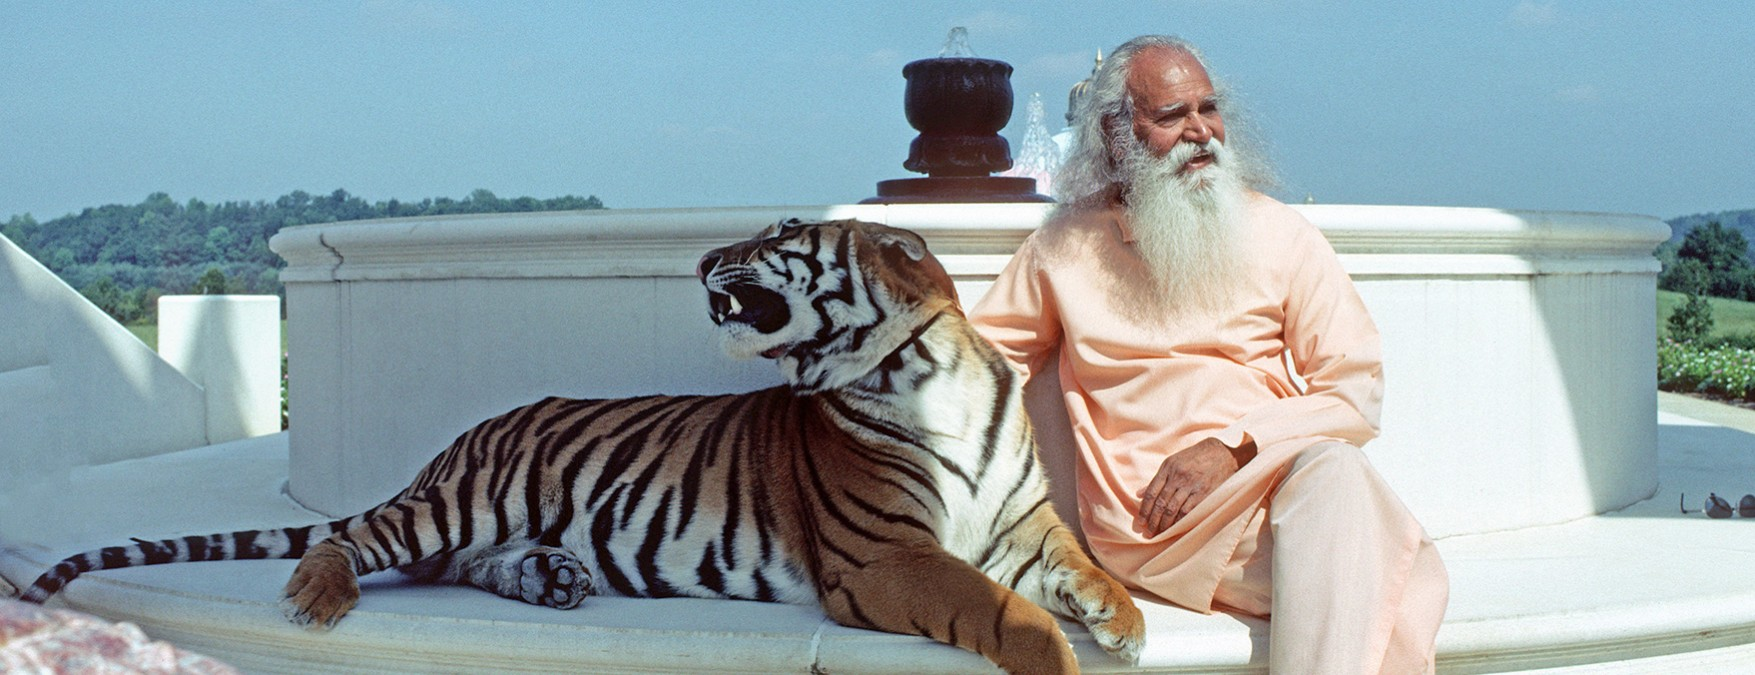 Swami Satchidananda sits with a tiger at the LOTUS